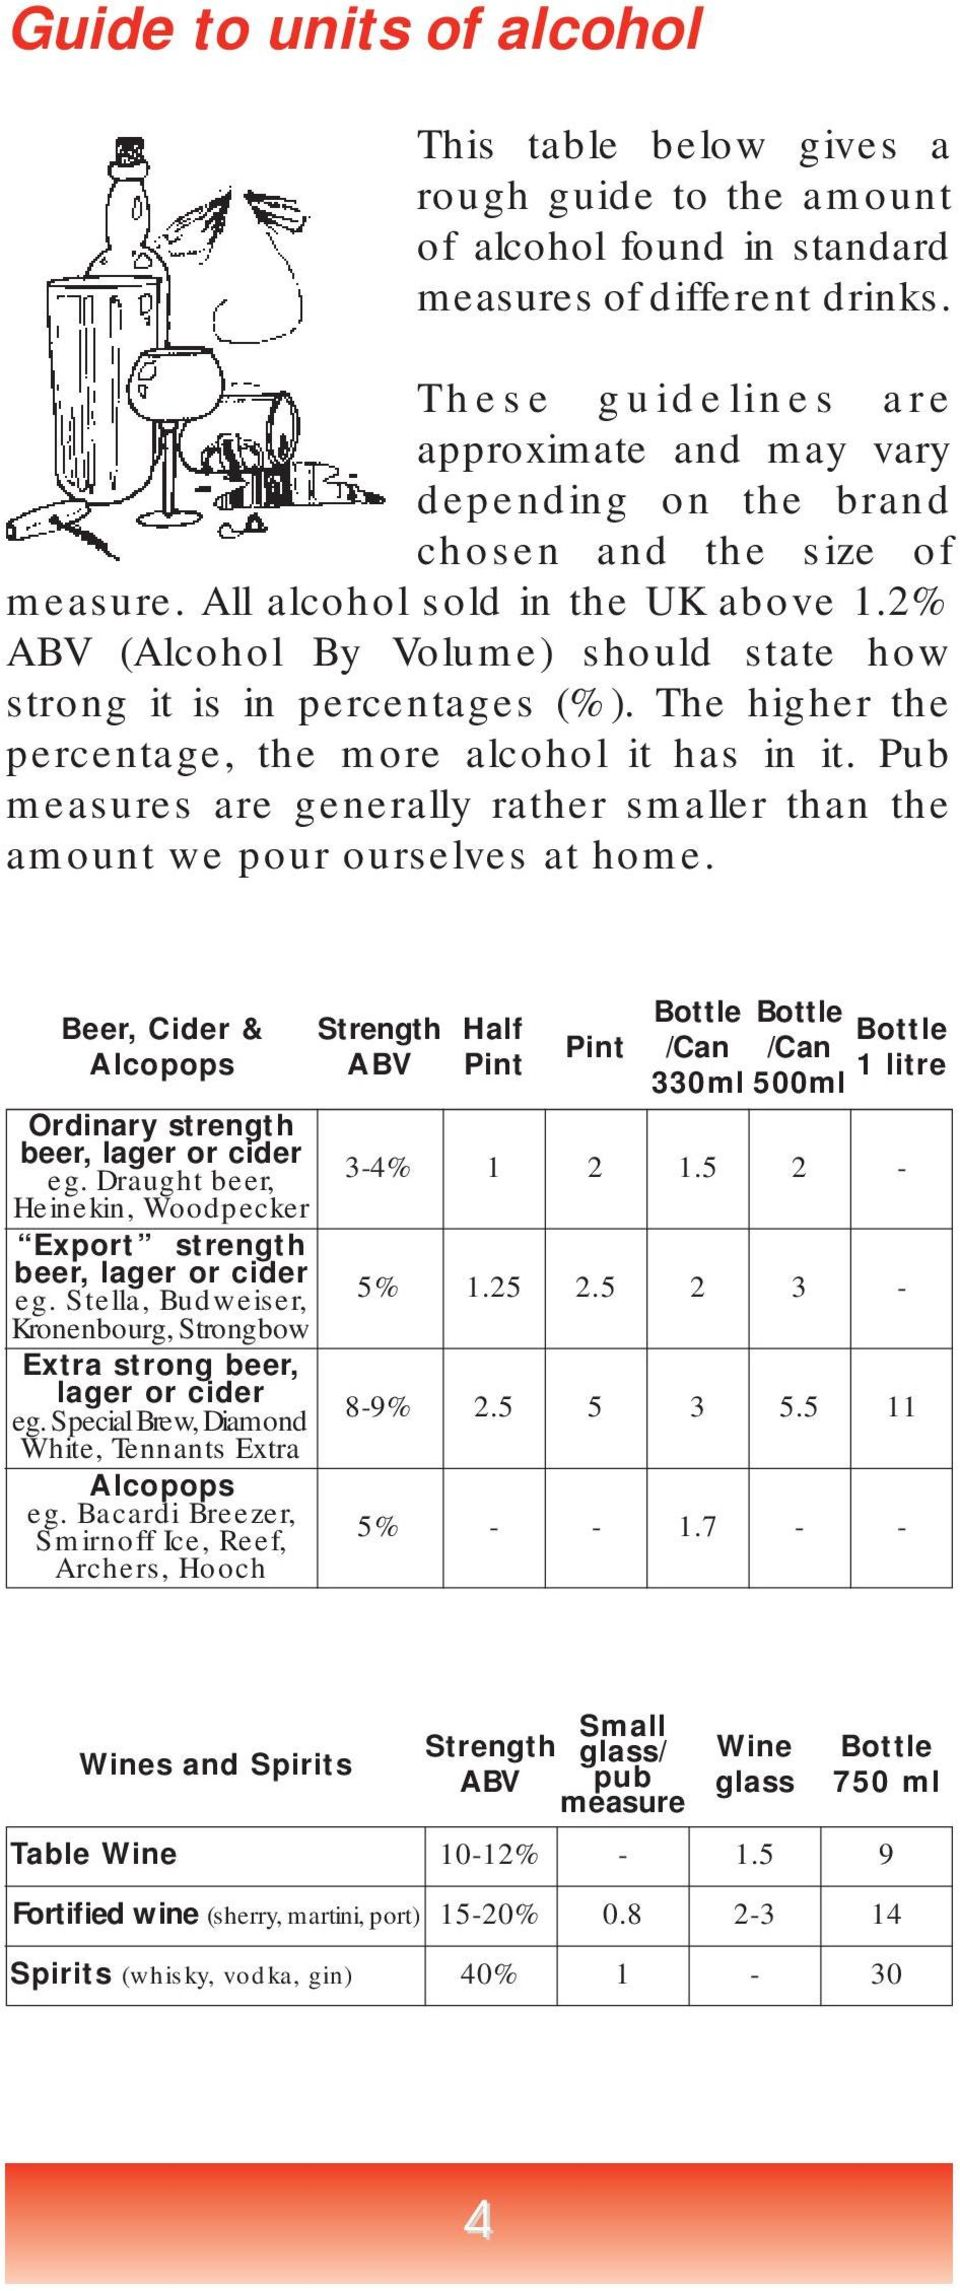 2% ABV (Alcohol By Volume) should state how strong it is in percentages (%). The higher the percentage, the more alcohol it has in it.